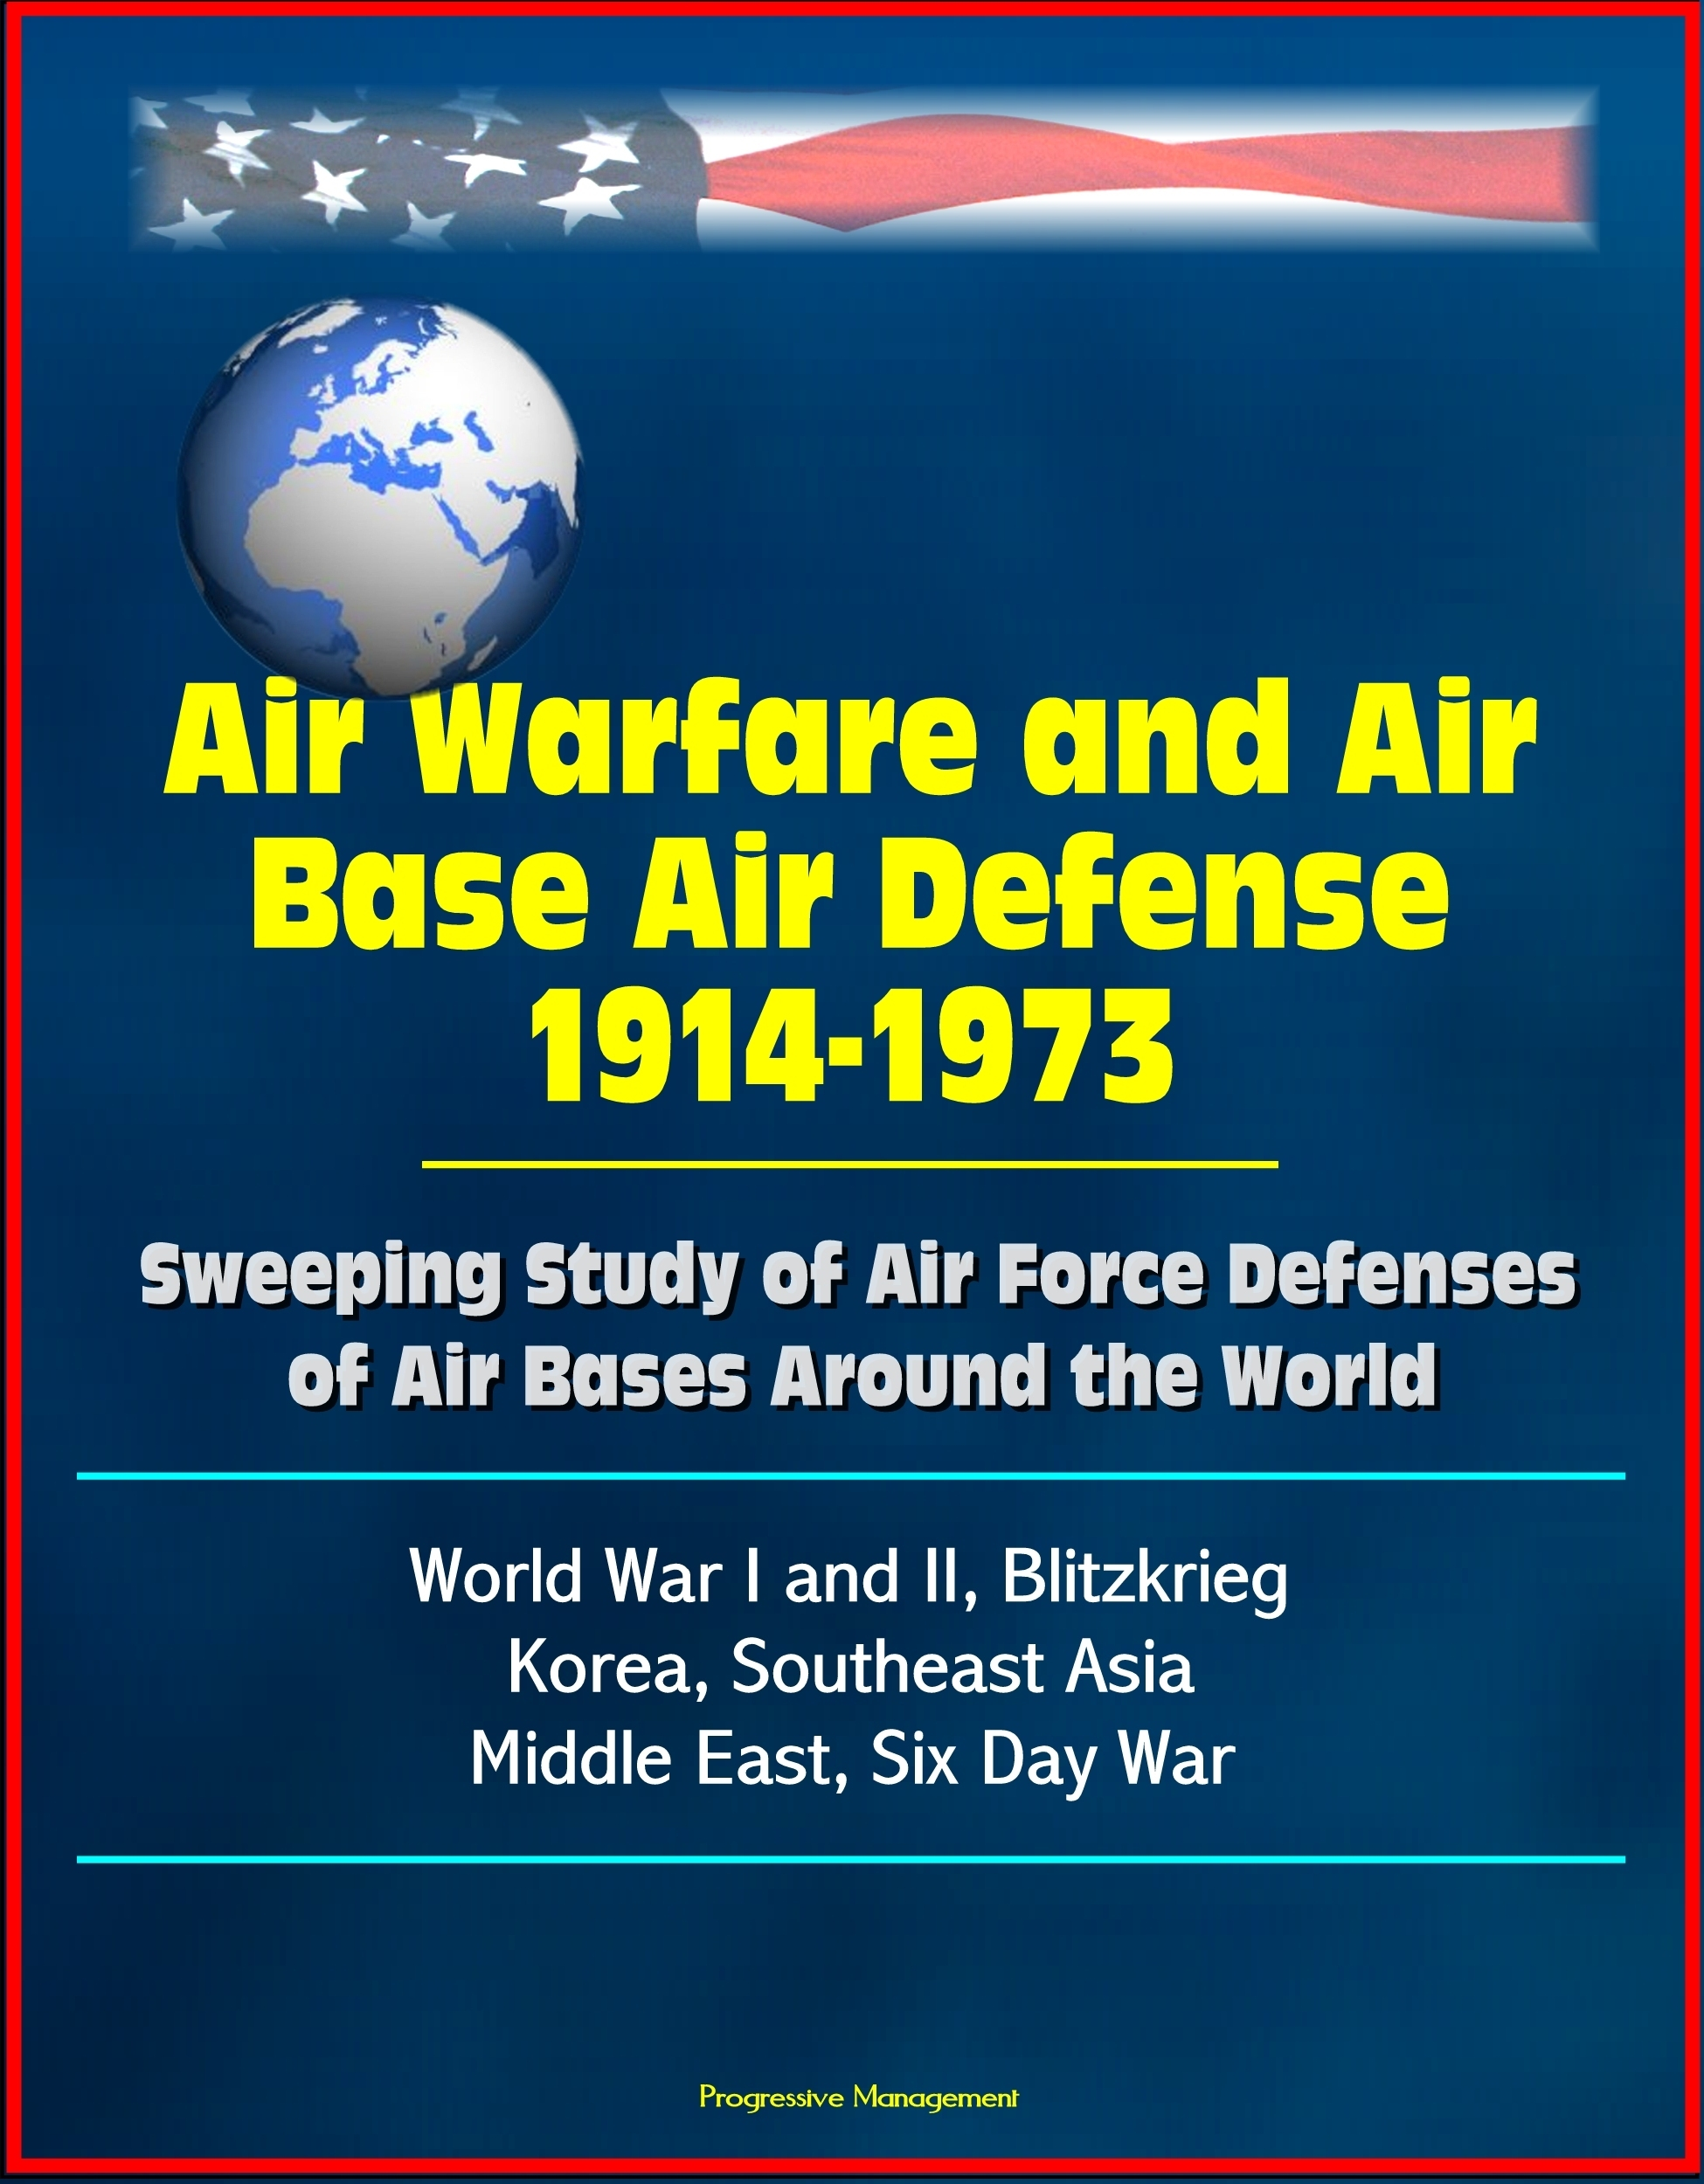 Air Warfare and Air Base Air Defense 1914-1973: Sweeping Study of Air Force Defenses of Air Bases Around the World, World War I and II, Blitzkrieg, Korea, Southeast Asia, Middle East, Six Day War  by  Progressive Management